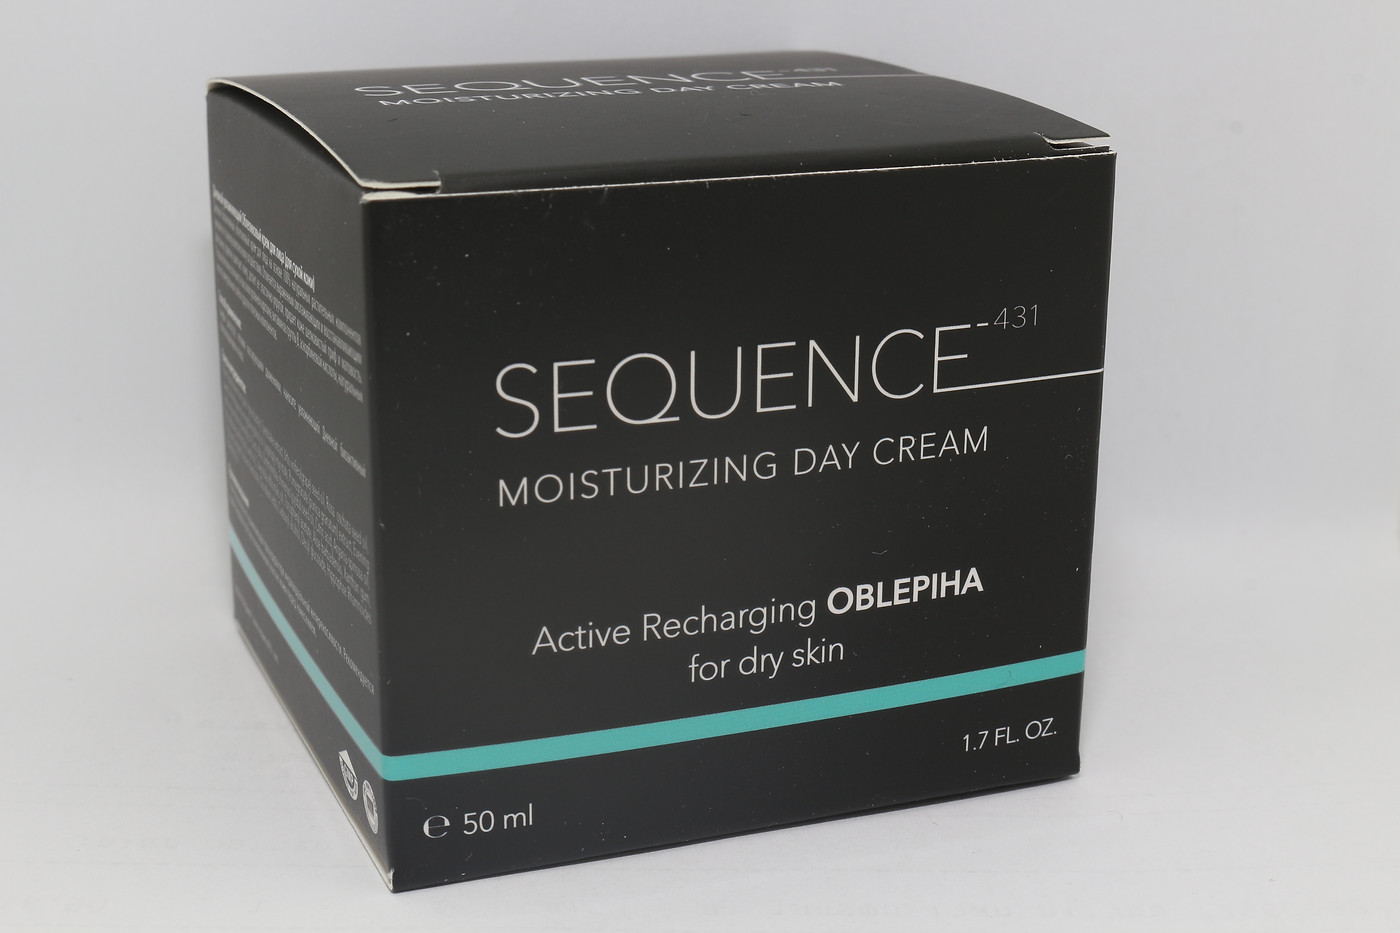 Moisturizing Day Cream - Active Rechargi